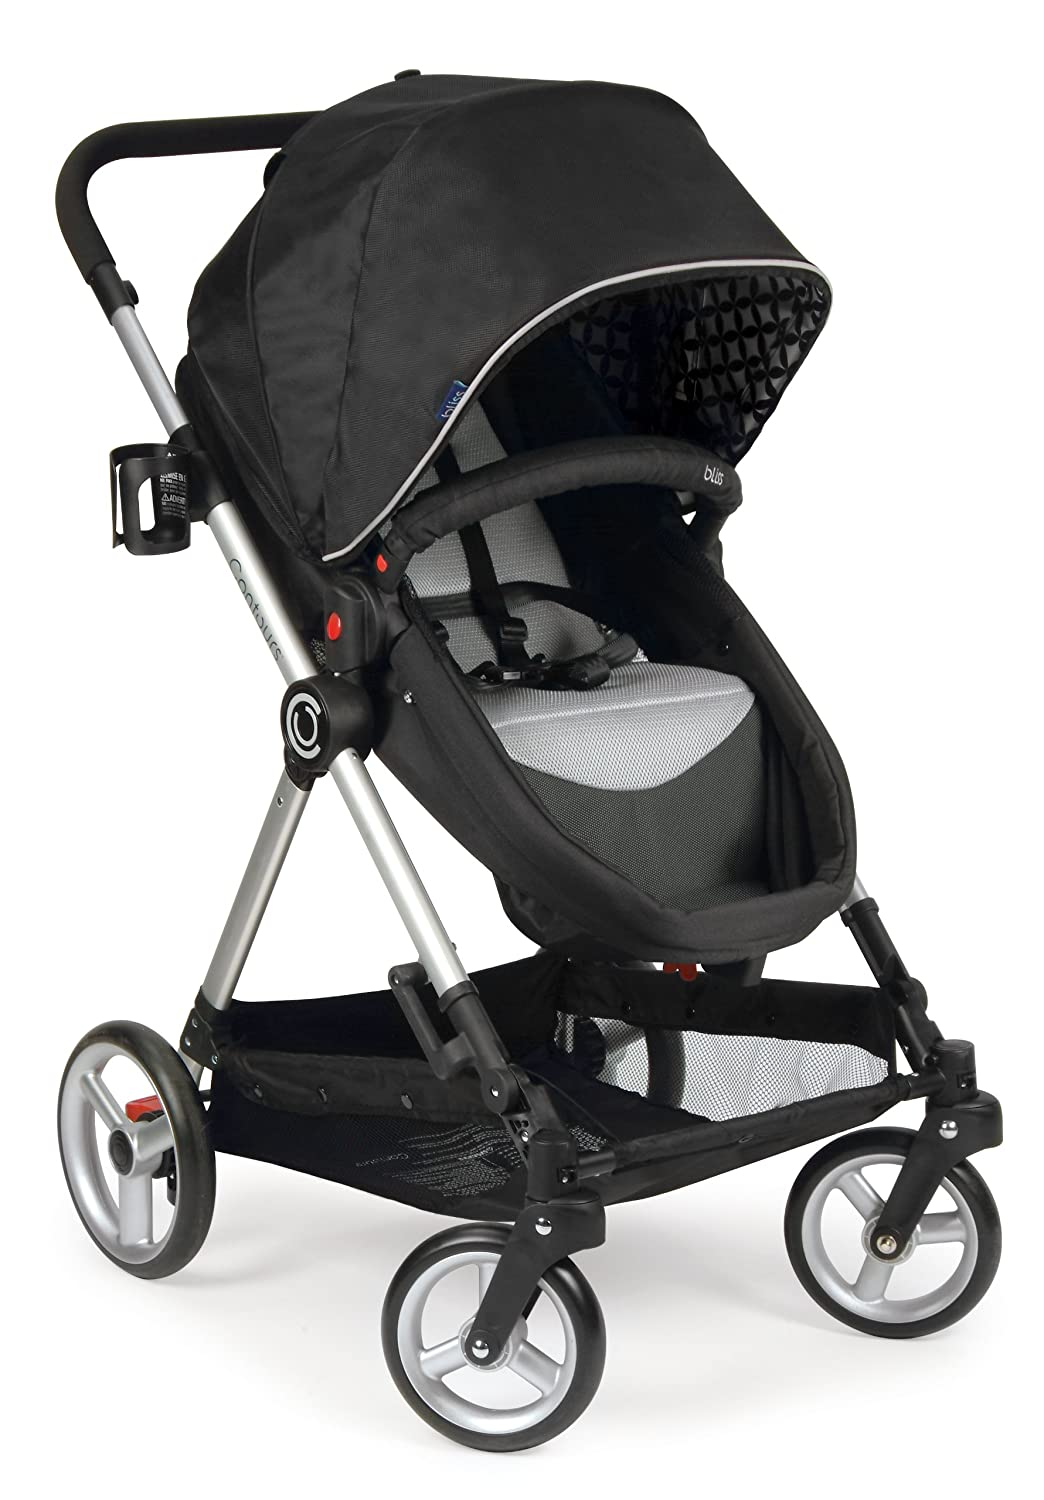 Contours Bliss 4 in 1 Stroller System